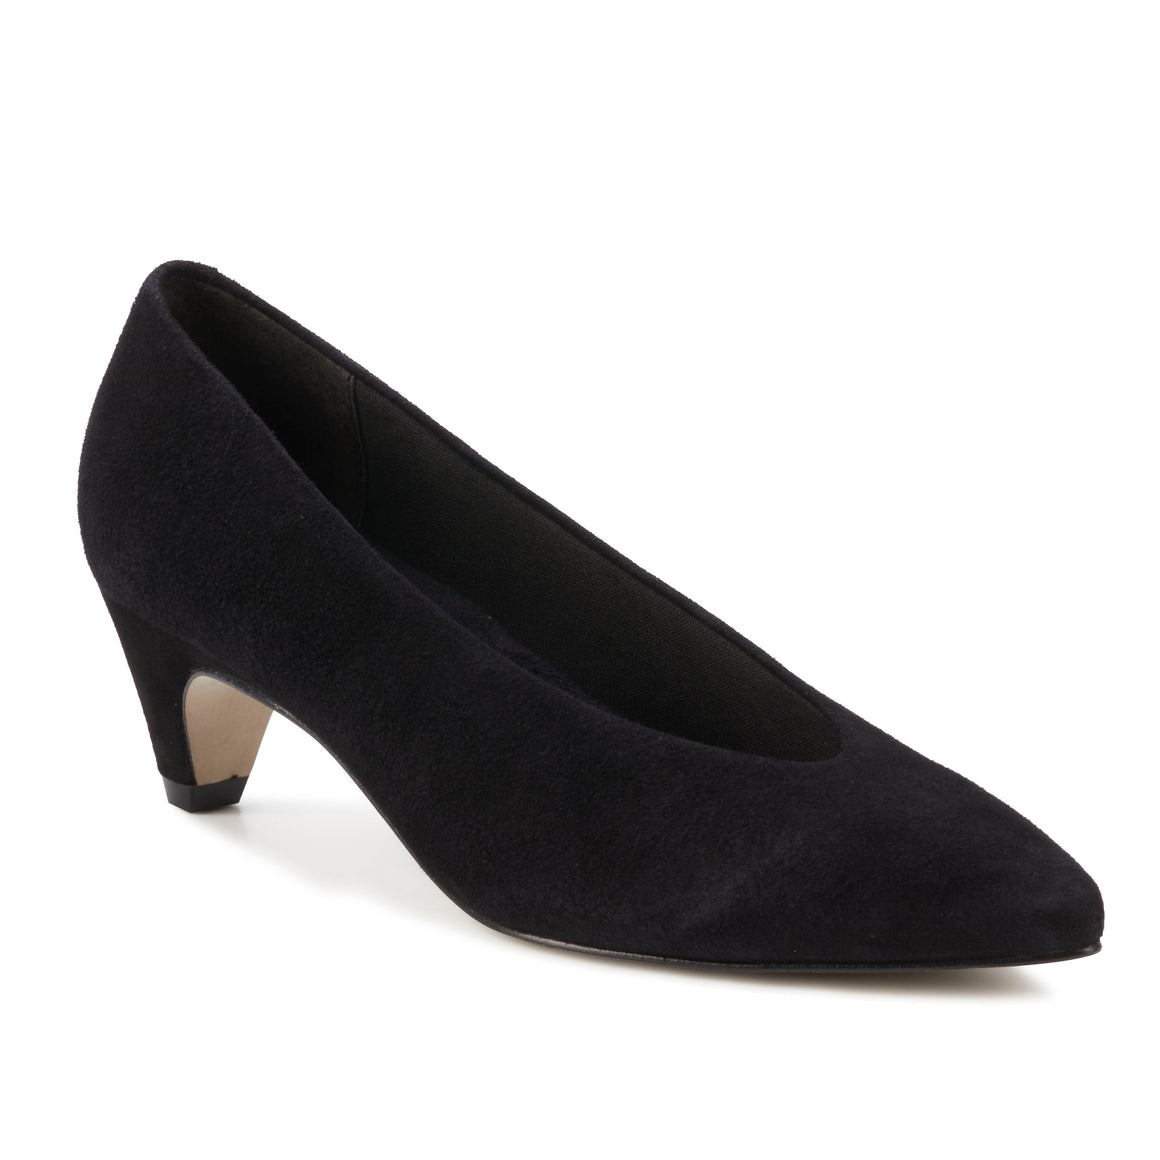 Bristol: Black Suede NEW